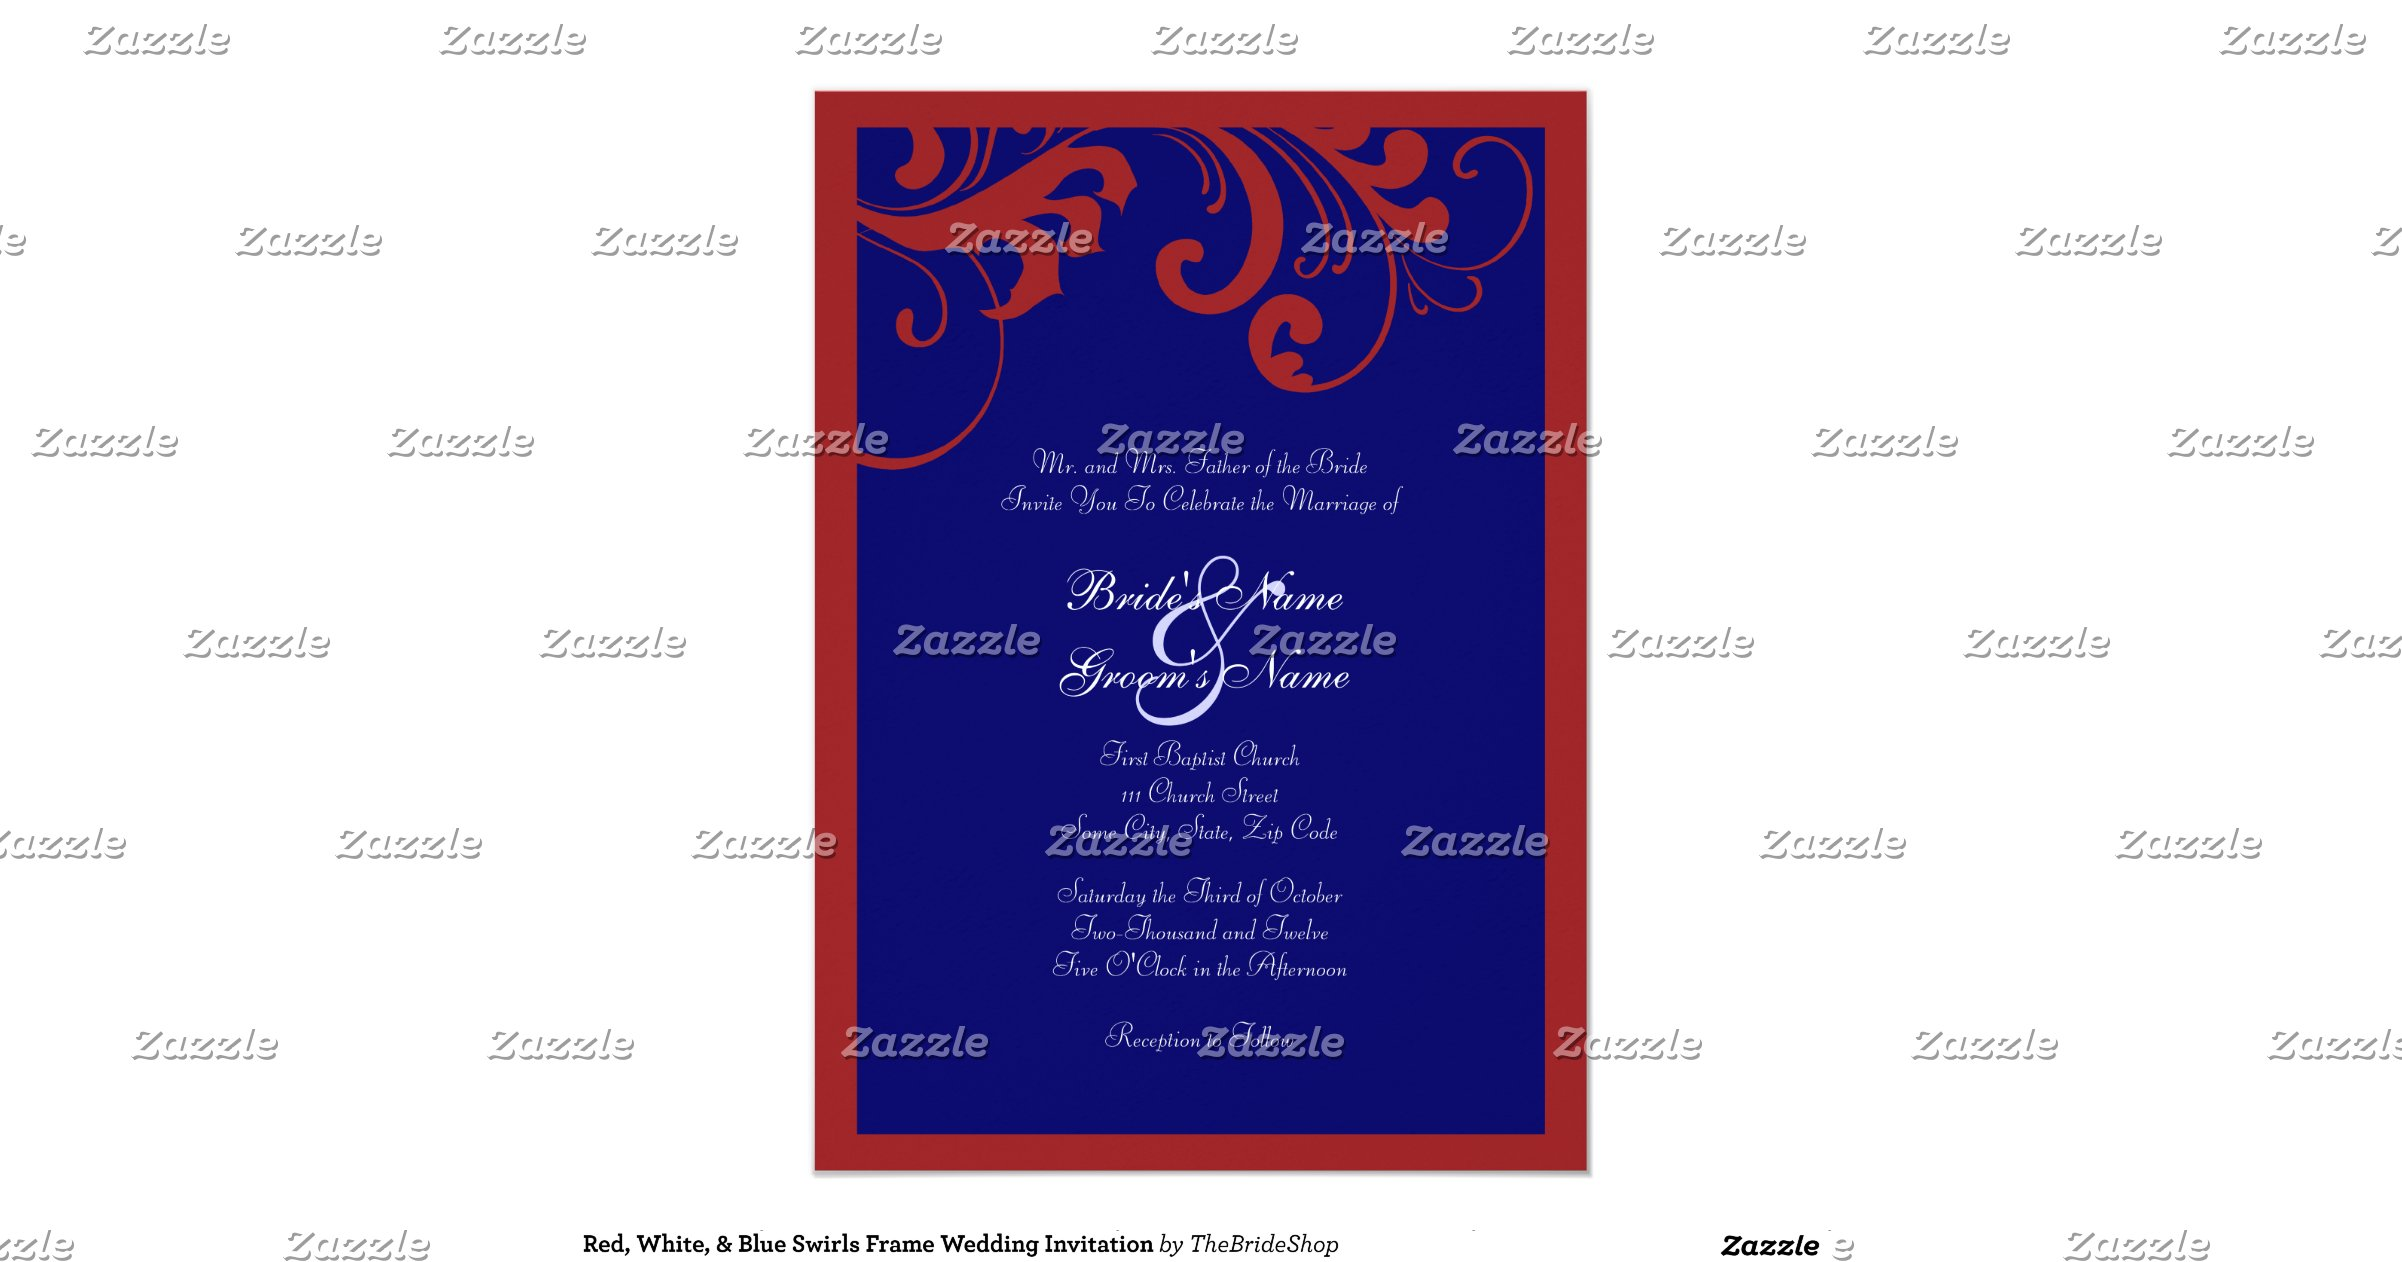 Red White And Blue Wedding Invitations: Red_white_blue_swirls_frame_wedding_invitation